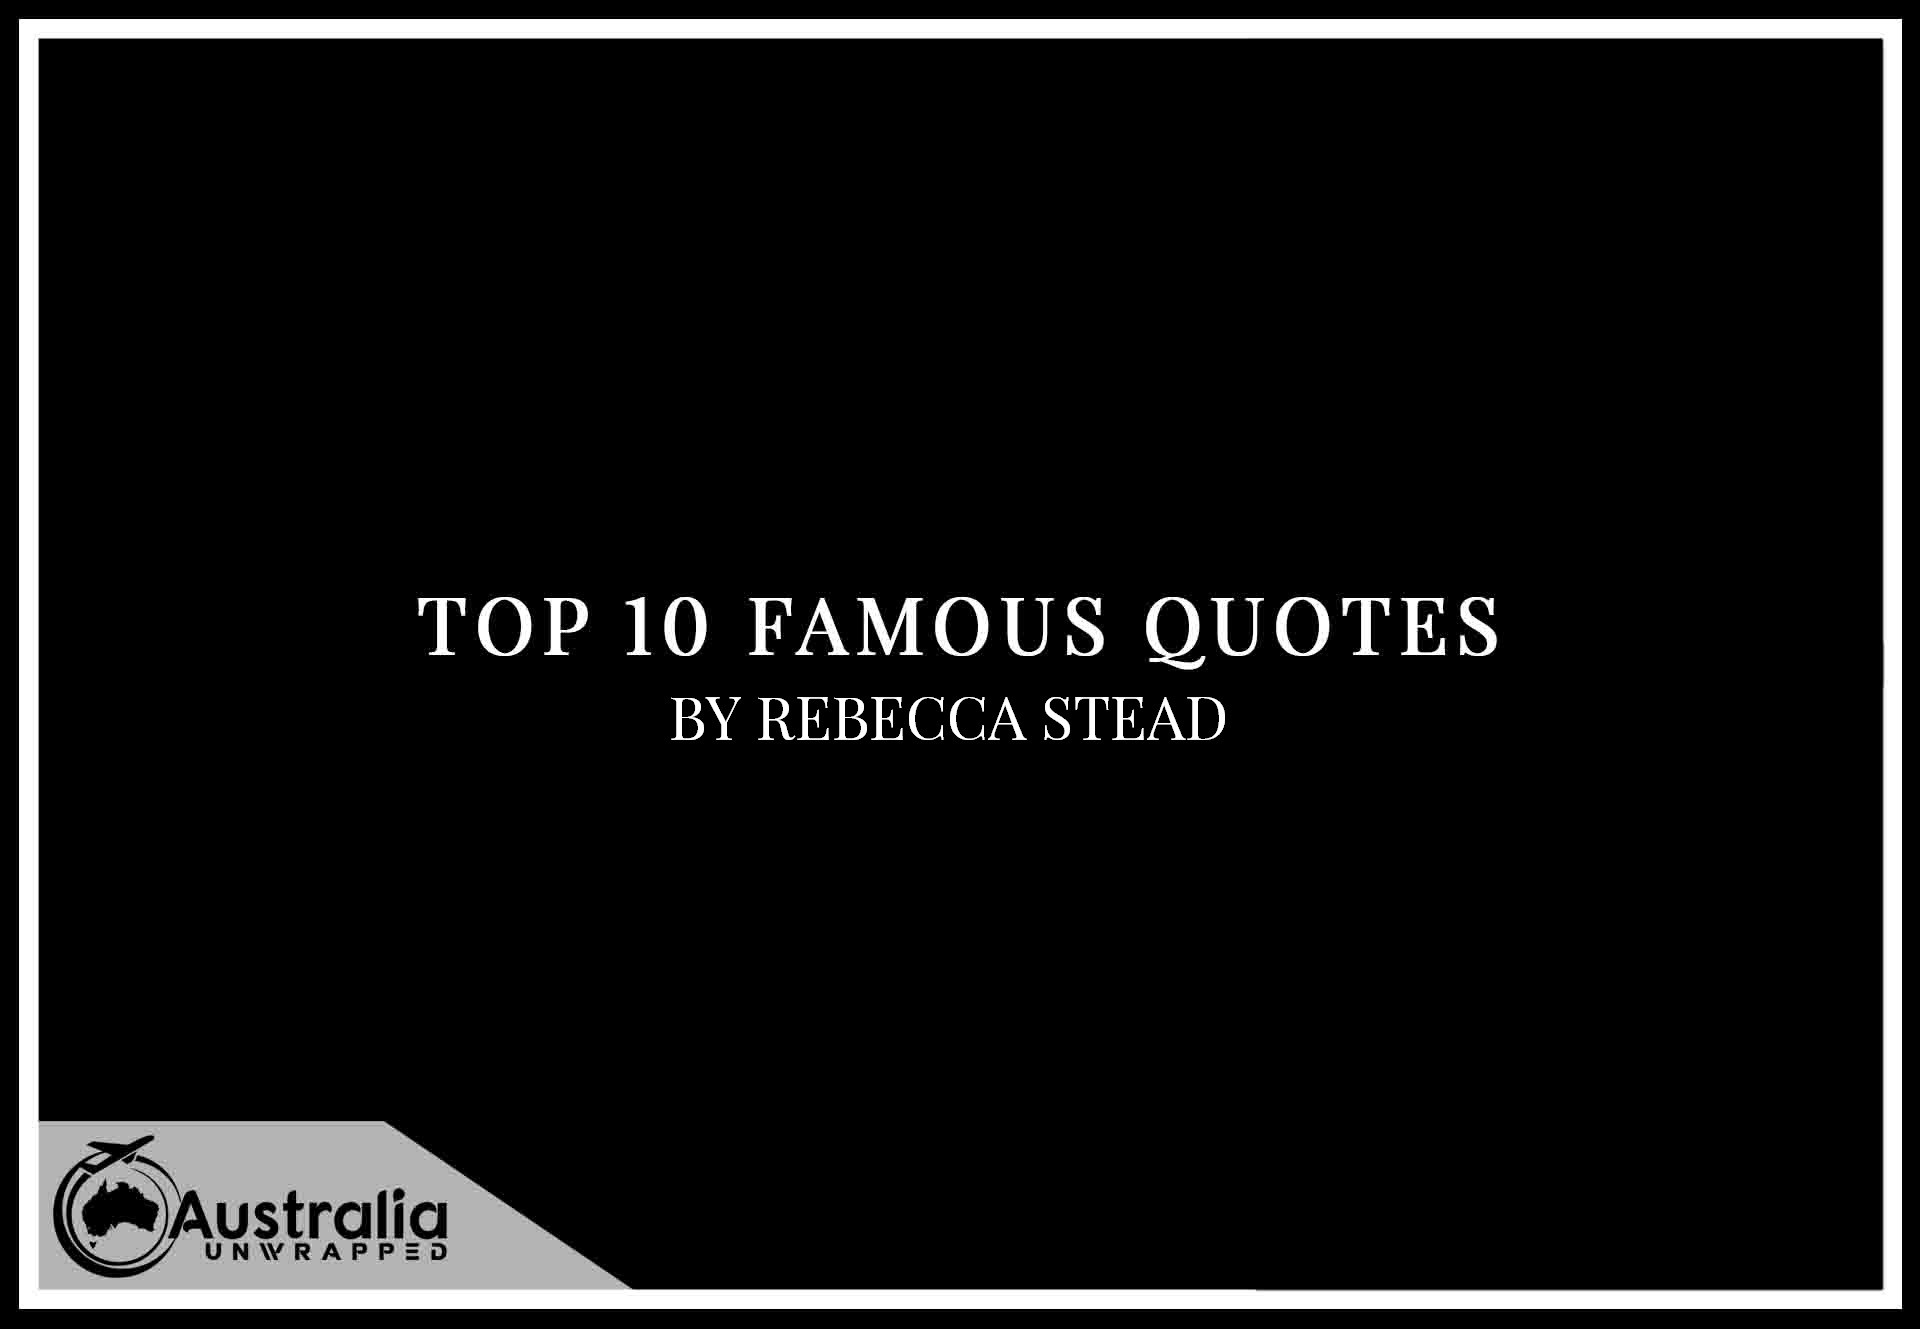 Top 10 Famous Quotes by Author Rebecca Stead